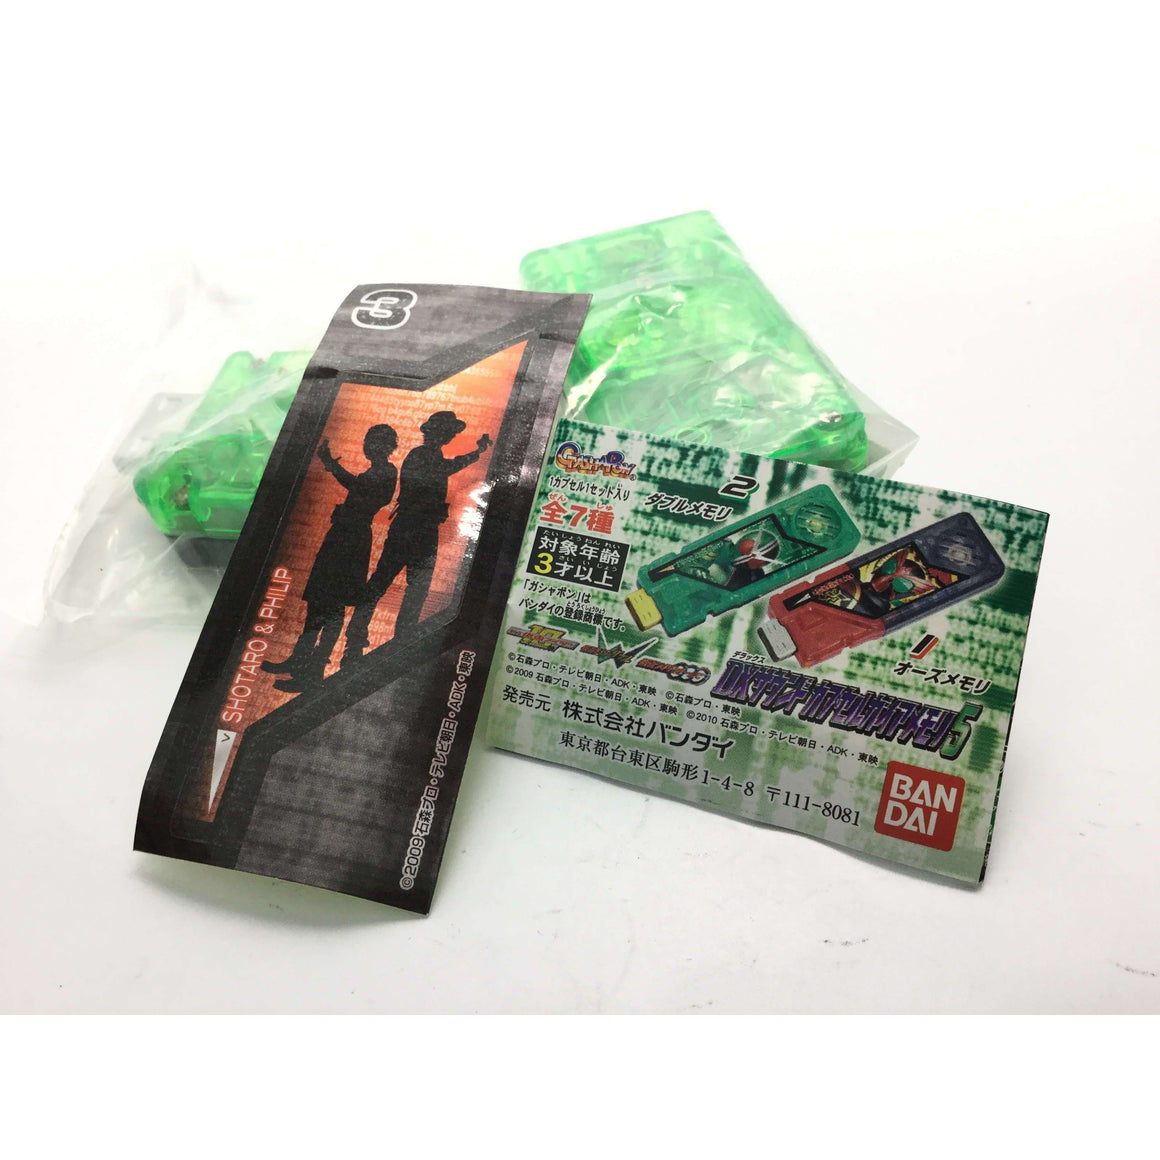 CSTOYS INTERNATIONAL:[LOOSE] Kamen Rider W: Sound Capsule Shotaro & Philip Gaia Memory